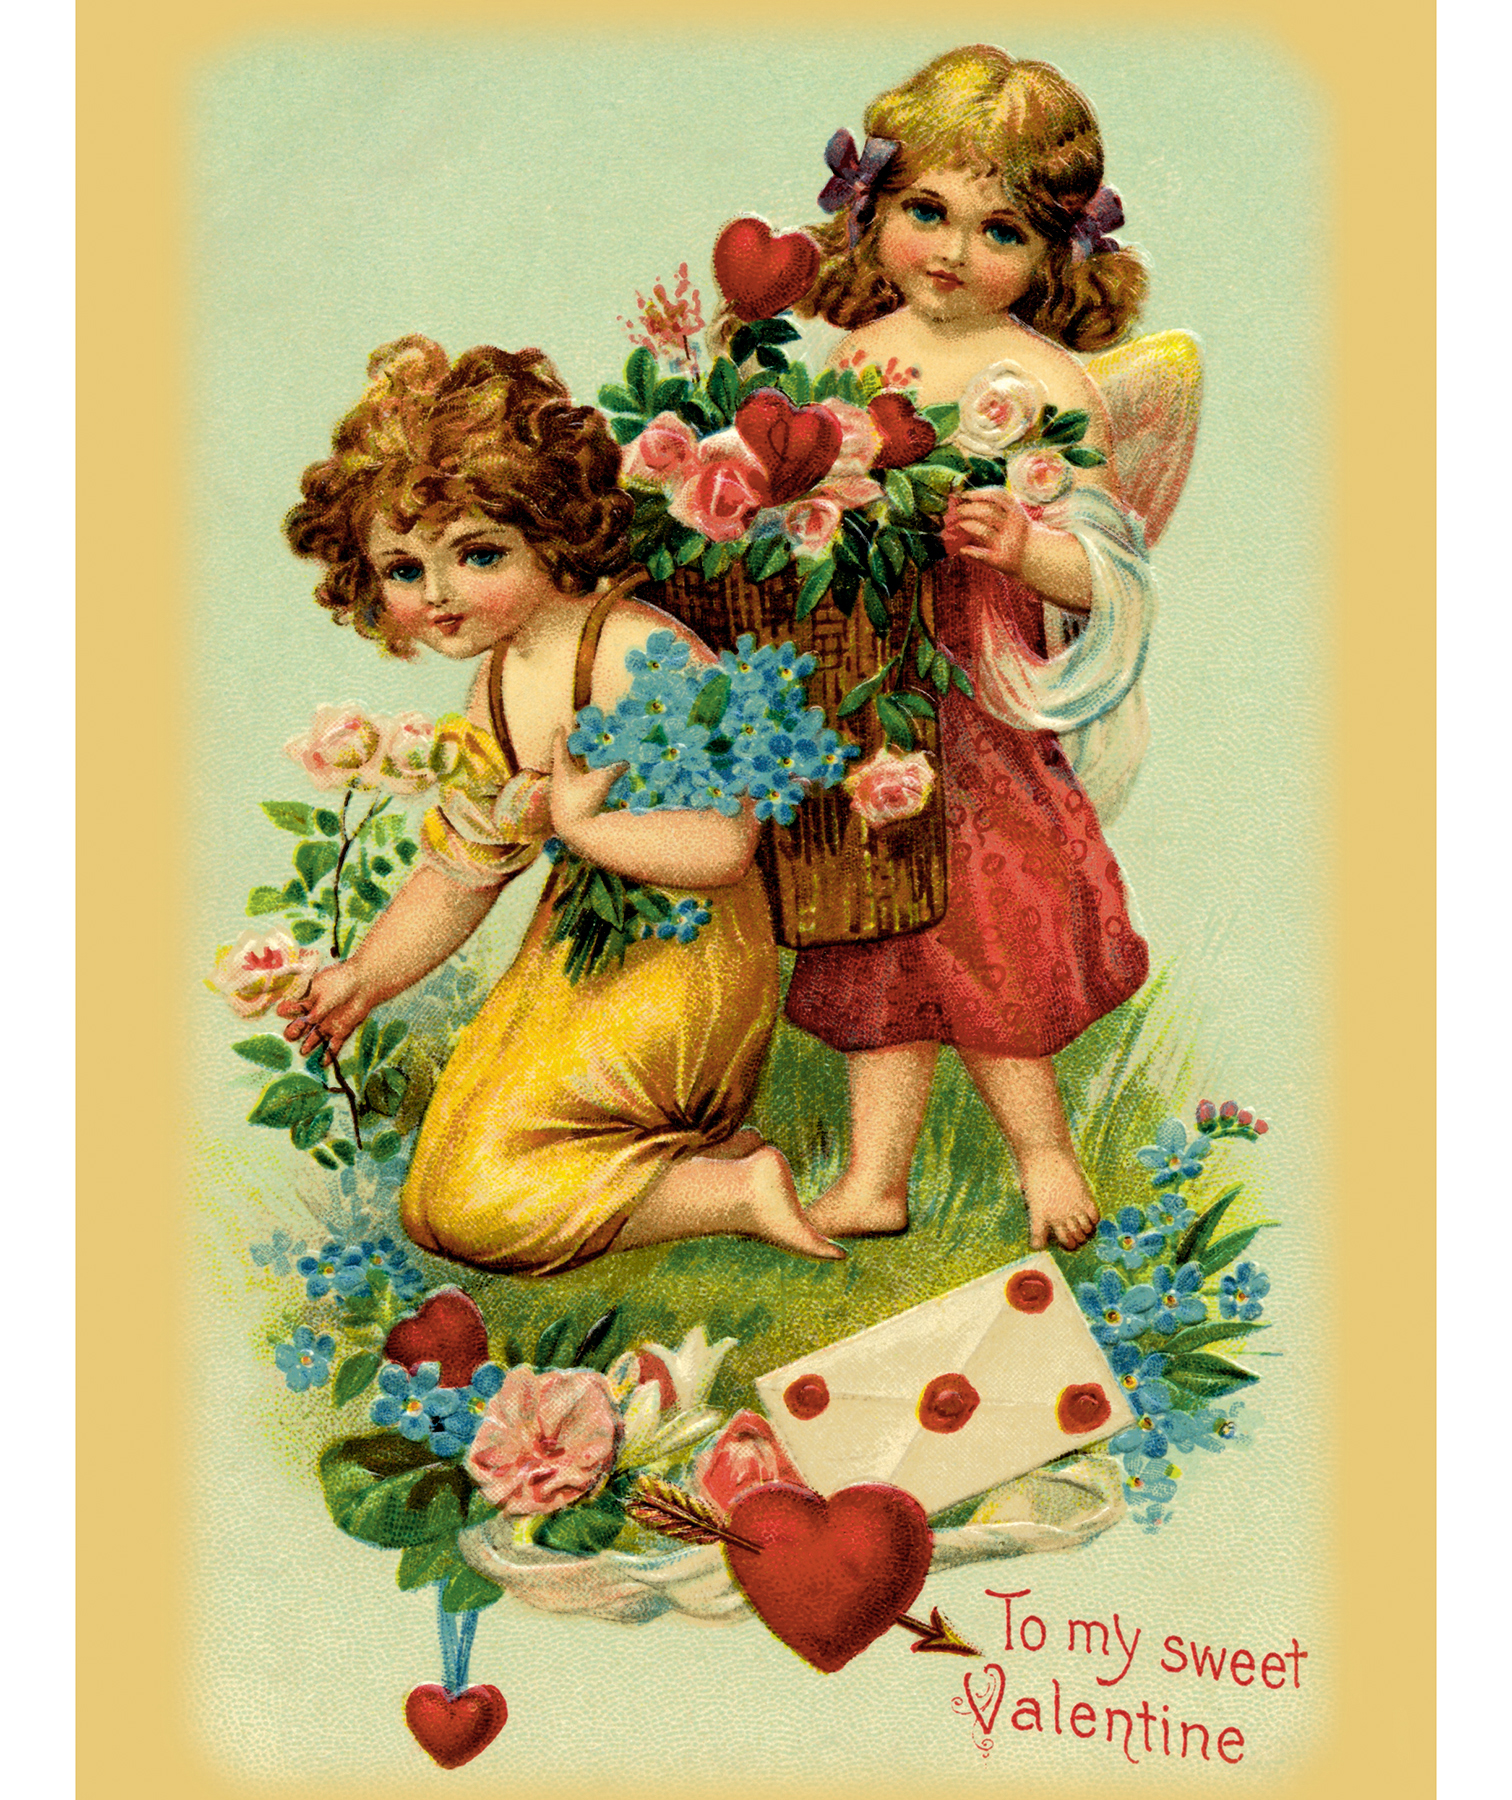 Valentine's Day history, origin, story, and more - Vintage Valentine's Day card